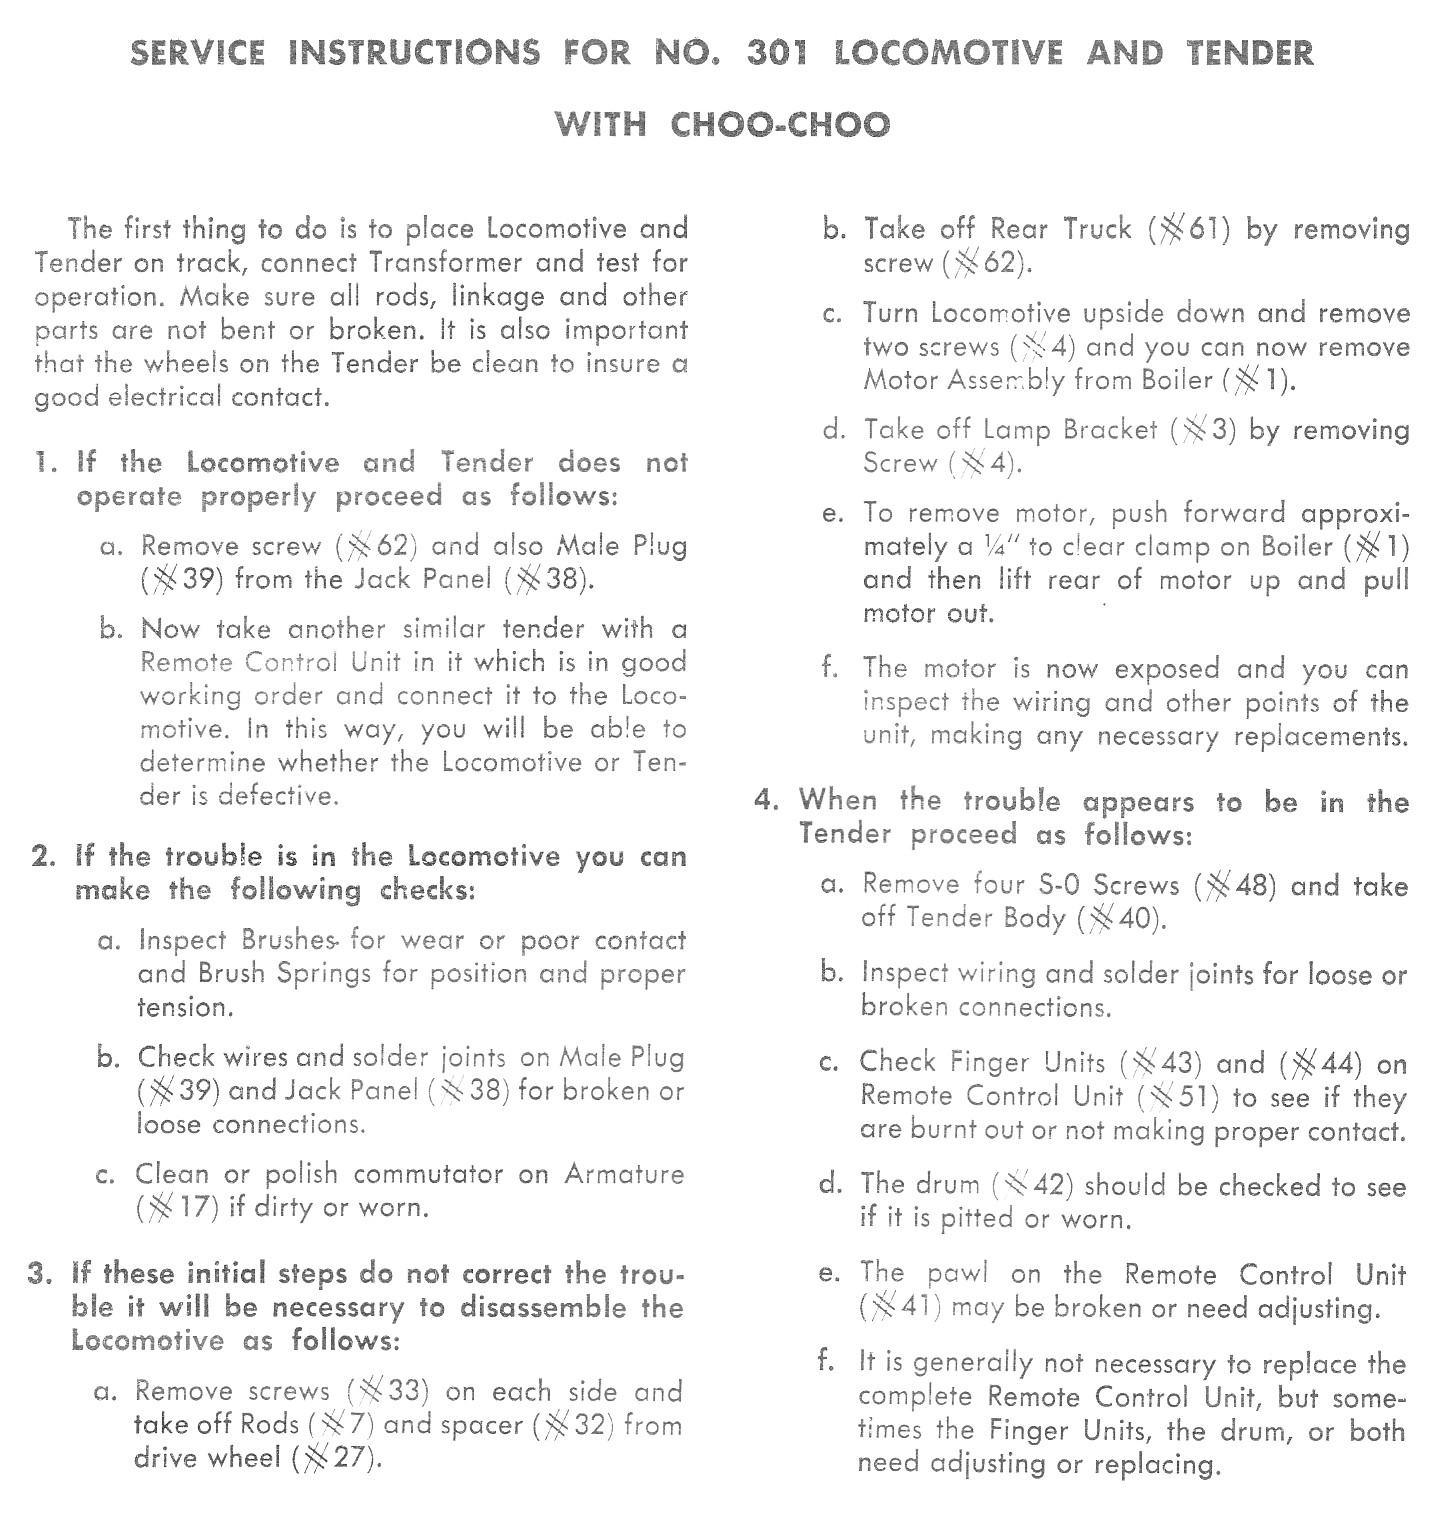 Service Instructions for No. 301 Locomotive and Tender with Choo-Choo